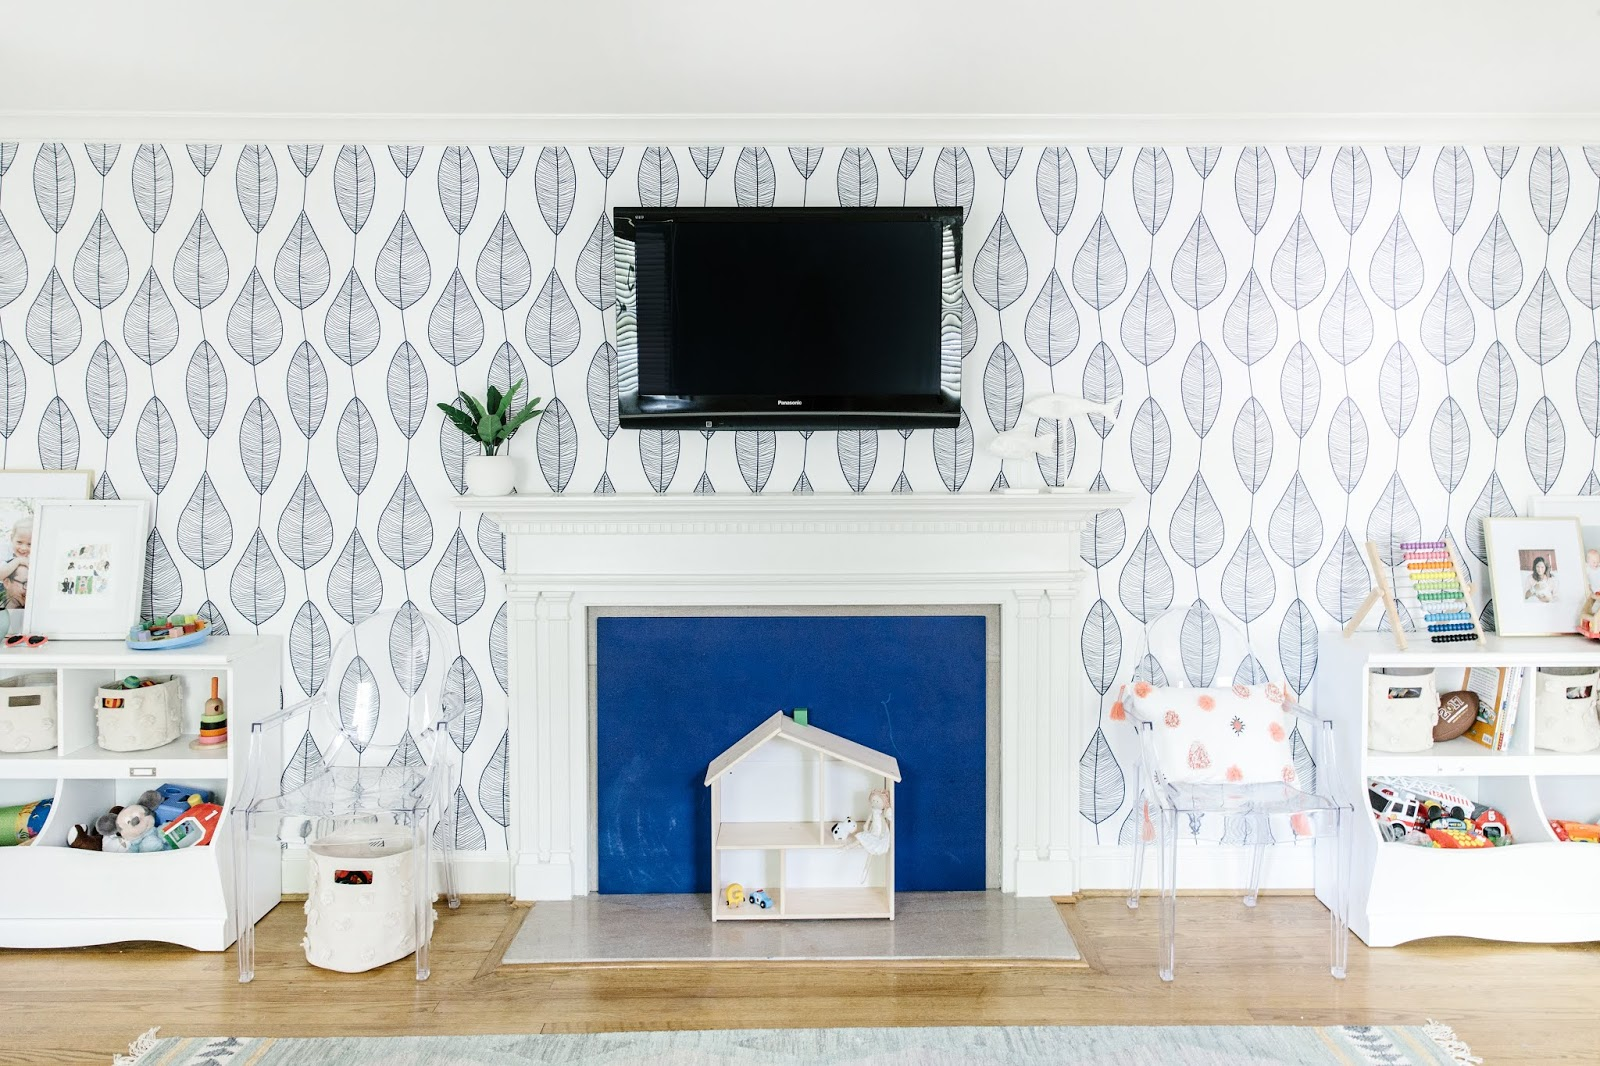 DIY Chalkboard Fireplace Cover: perfect for babyproofing!